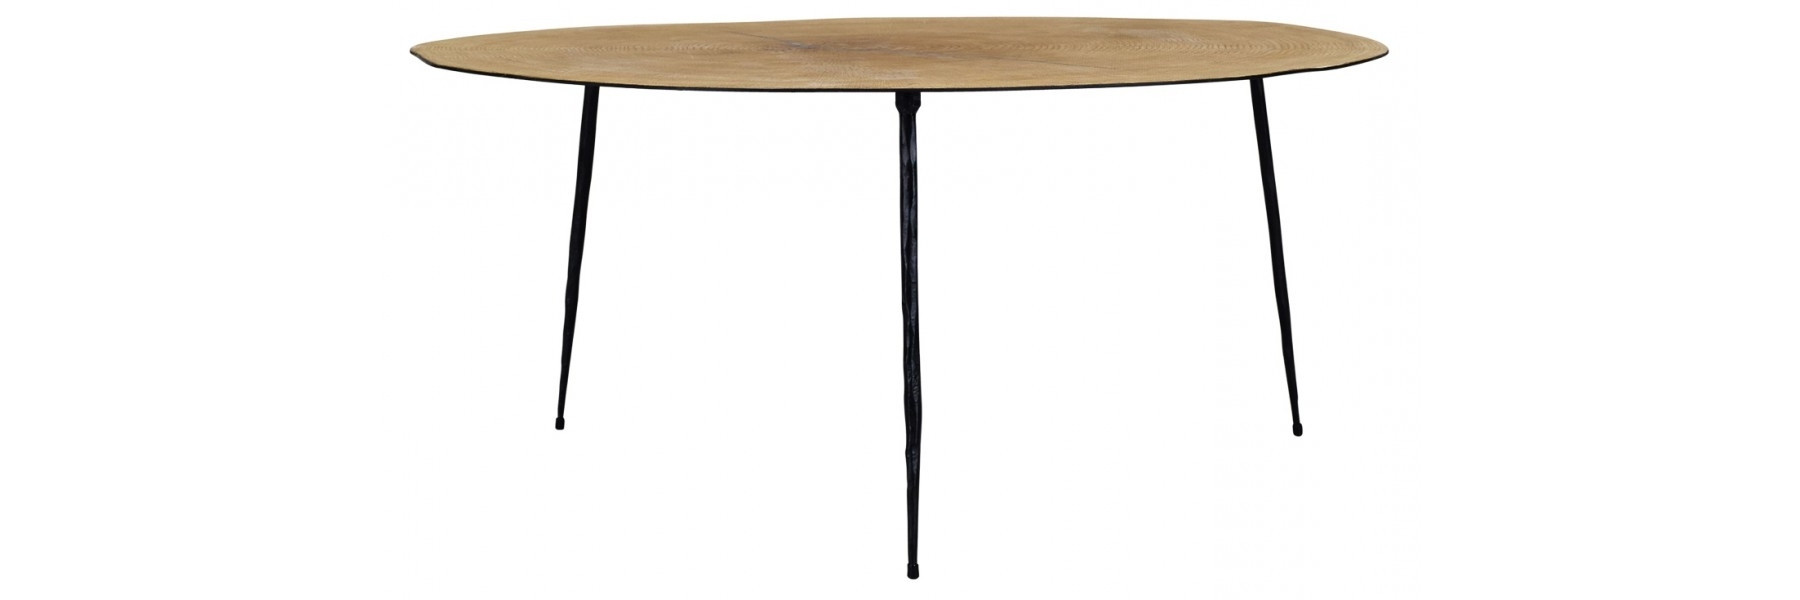 Famous Parker Oval Marble Coffee Tables Inside July Coffee Table Tall (View 16 of 20)